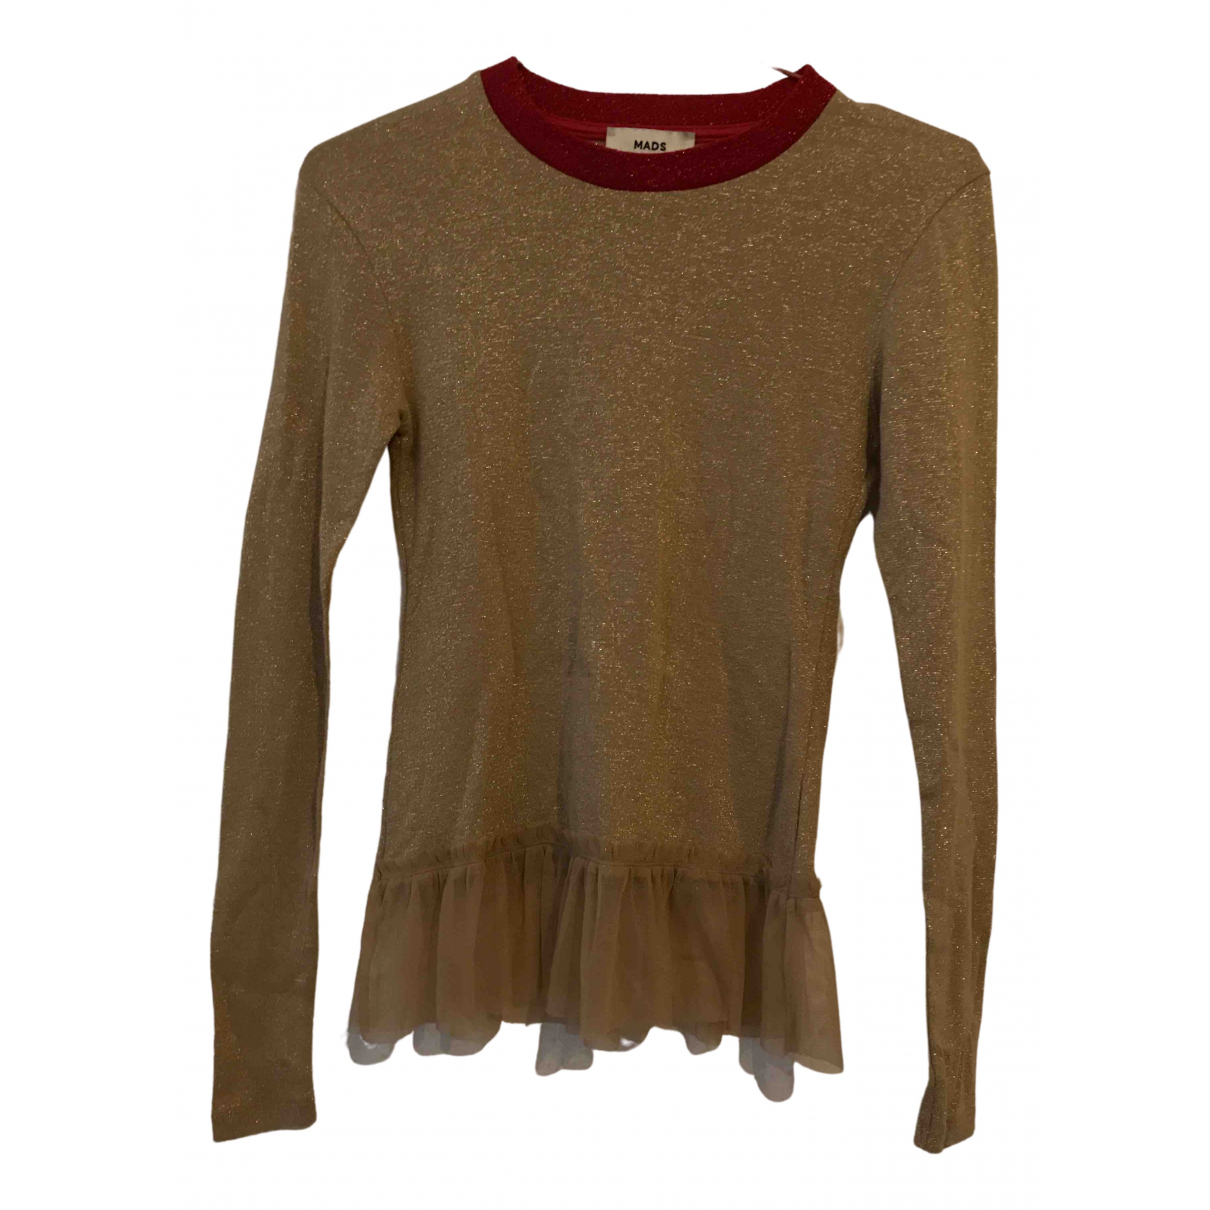 Mads Nørgaard \N Gold Cotton  top for Women S International